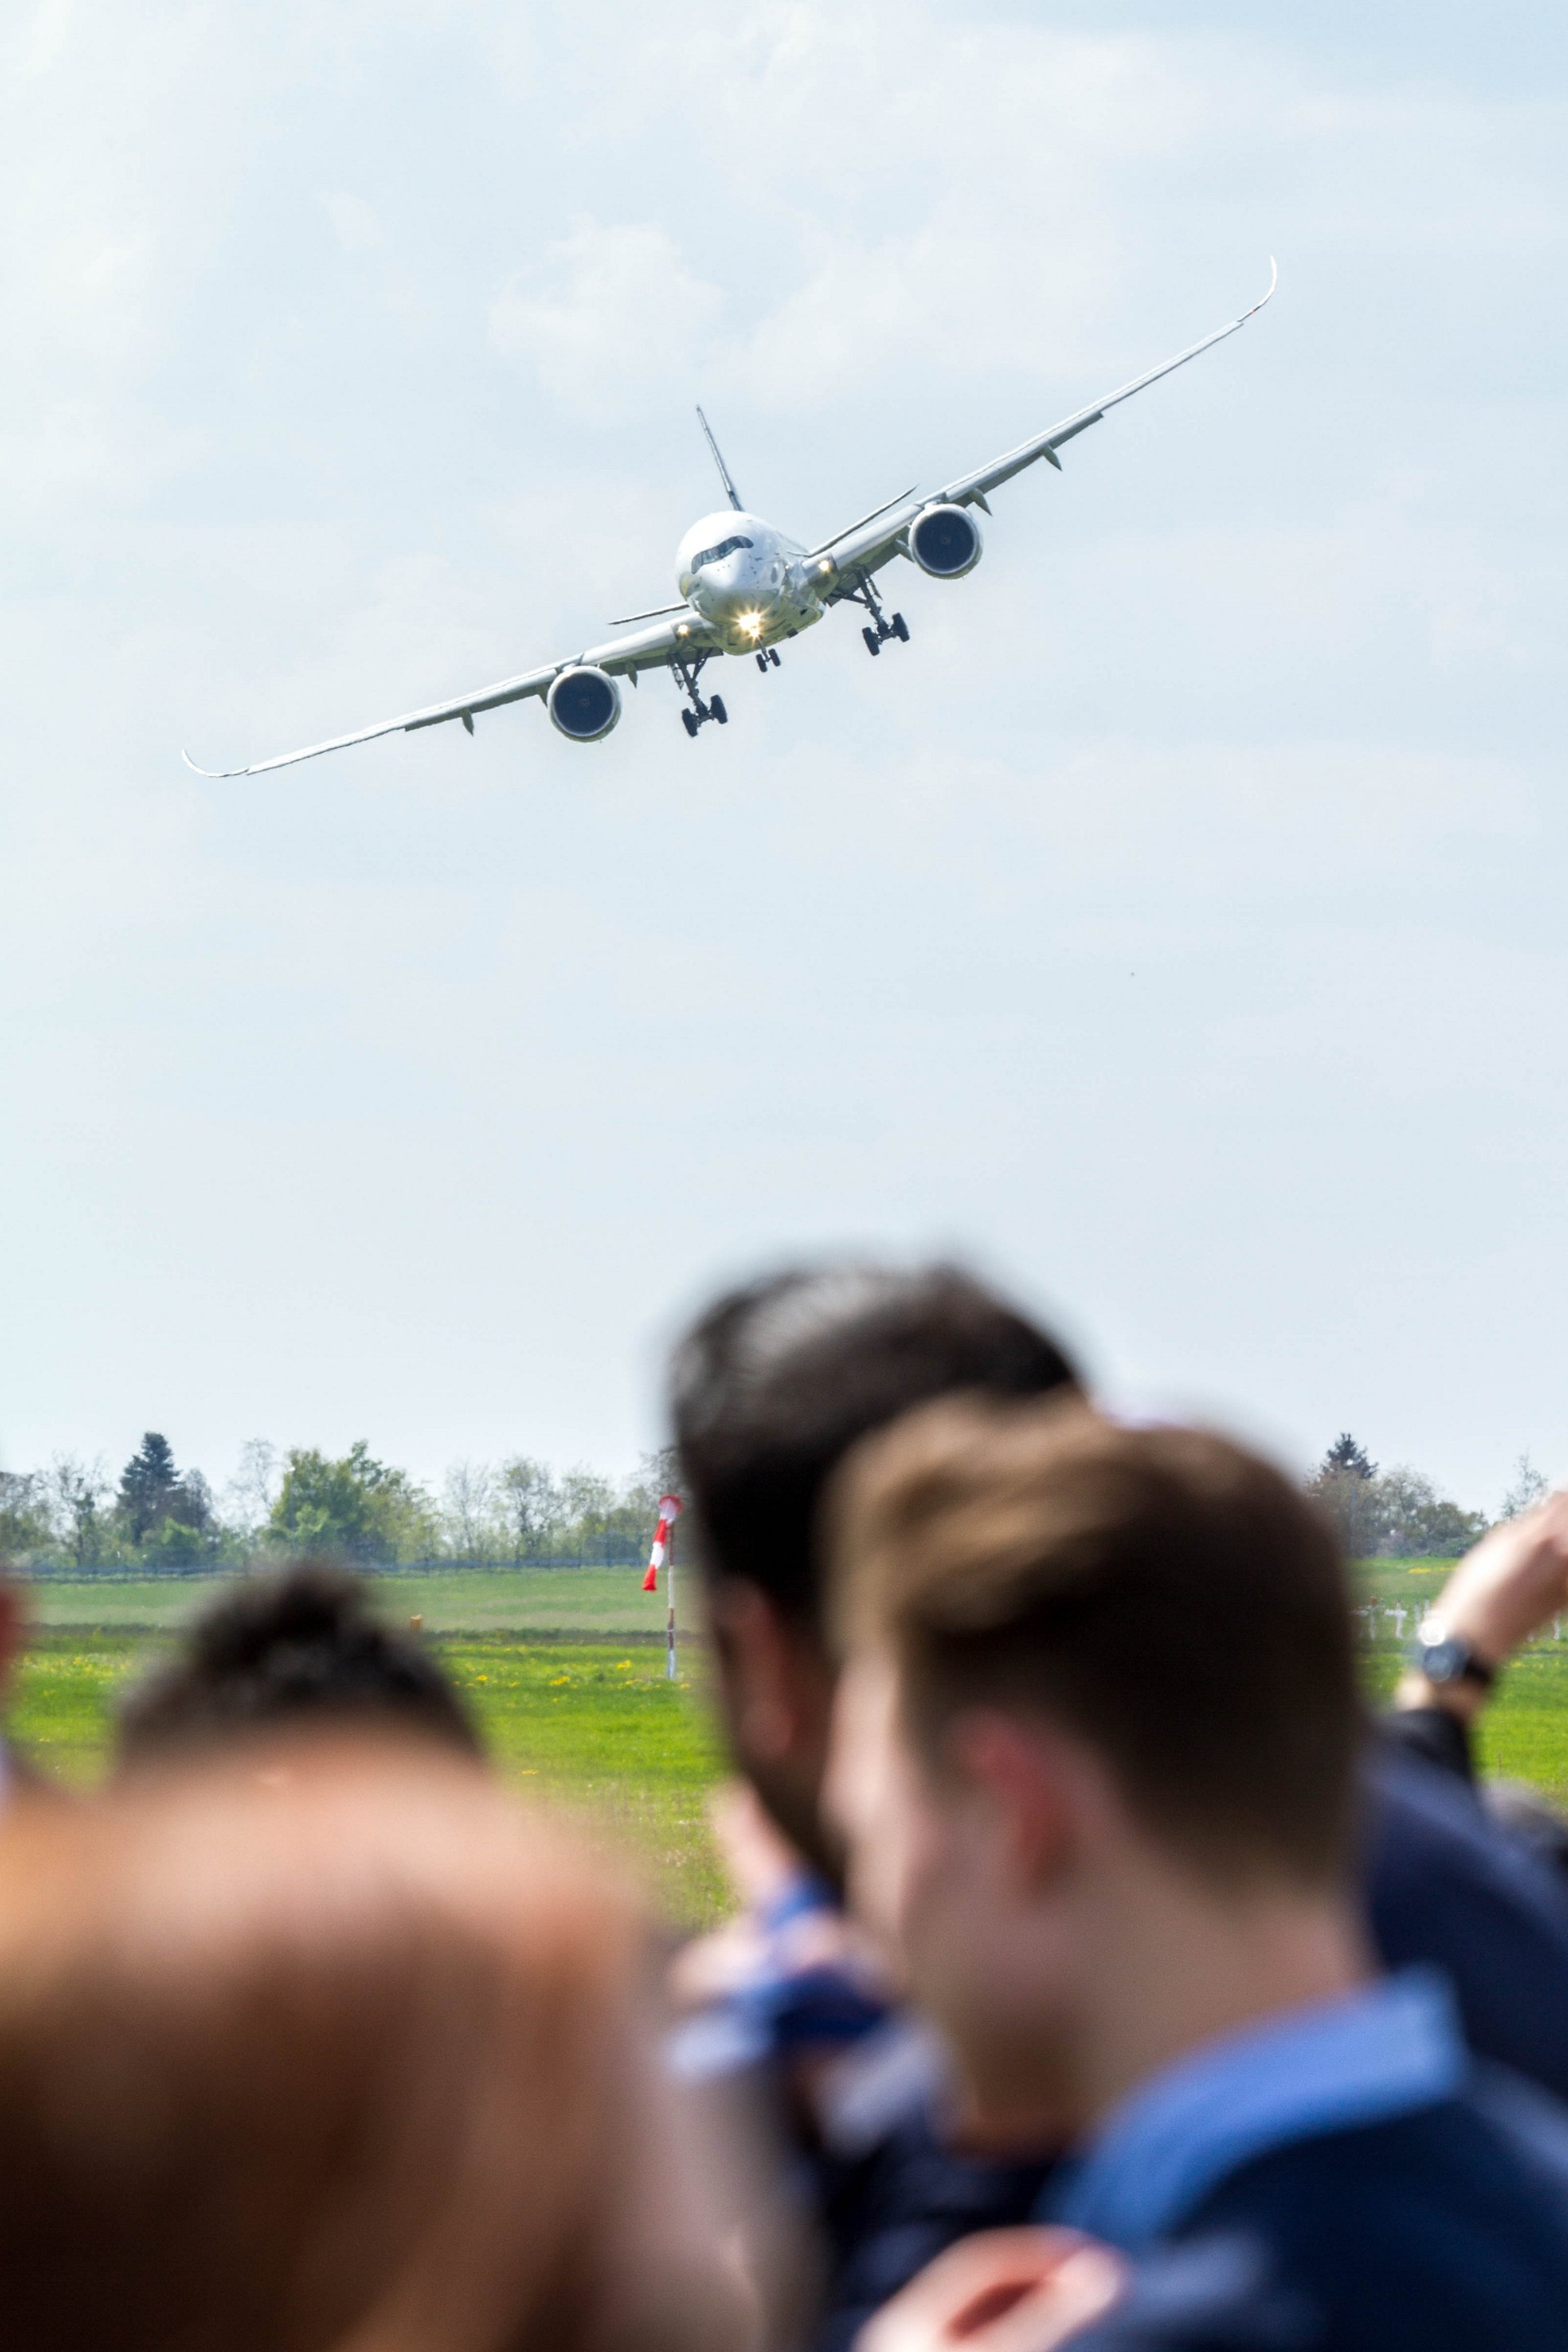 A350 XWB Flight display at ILA Berlin 2018